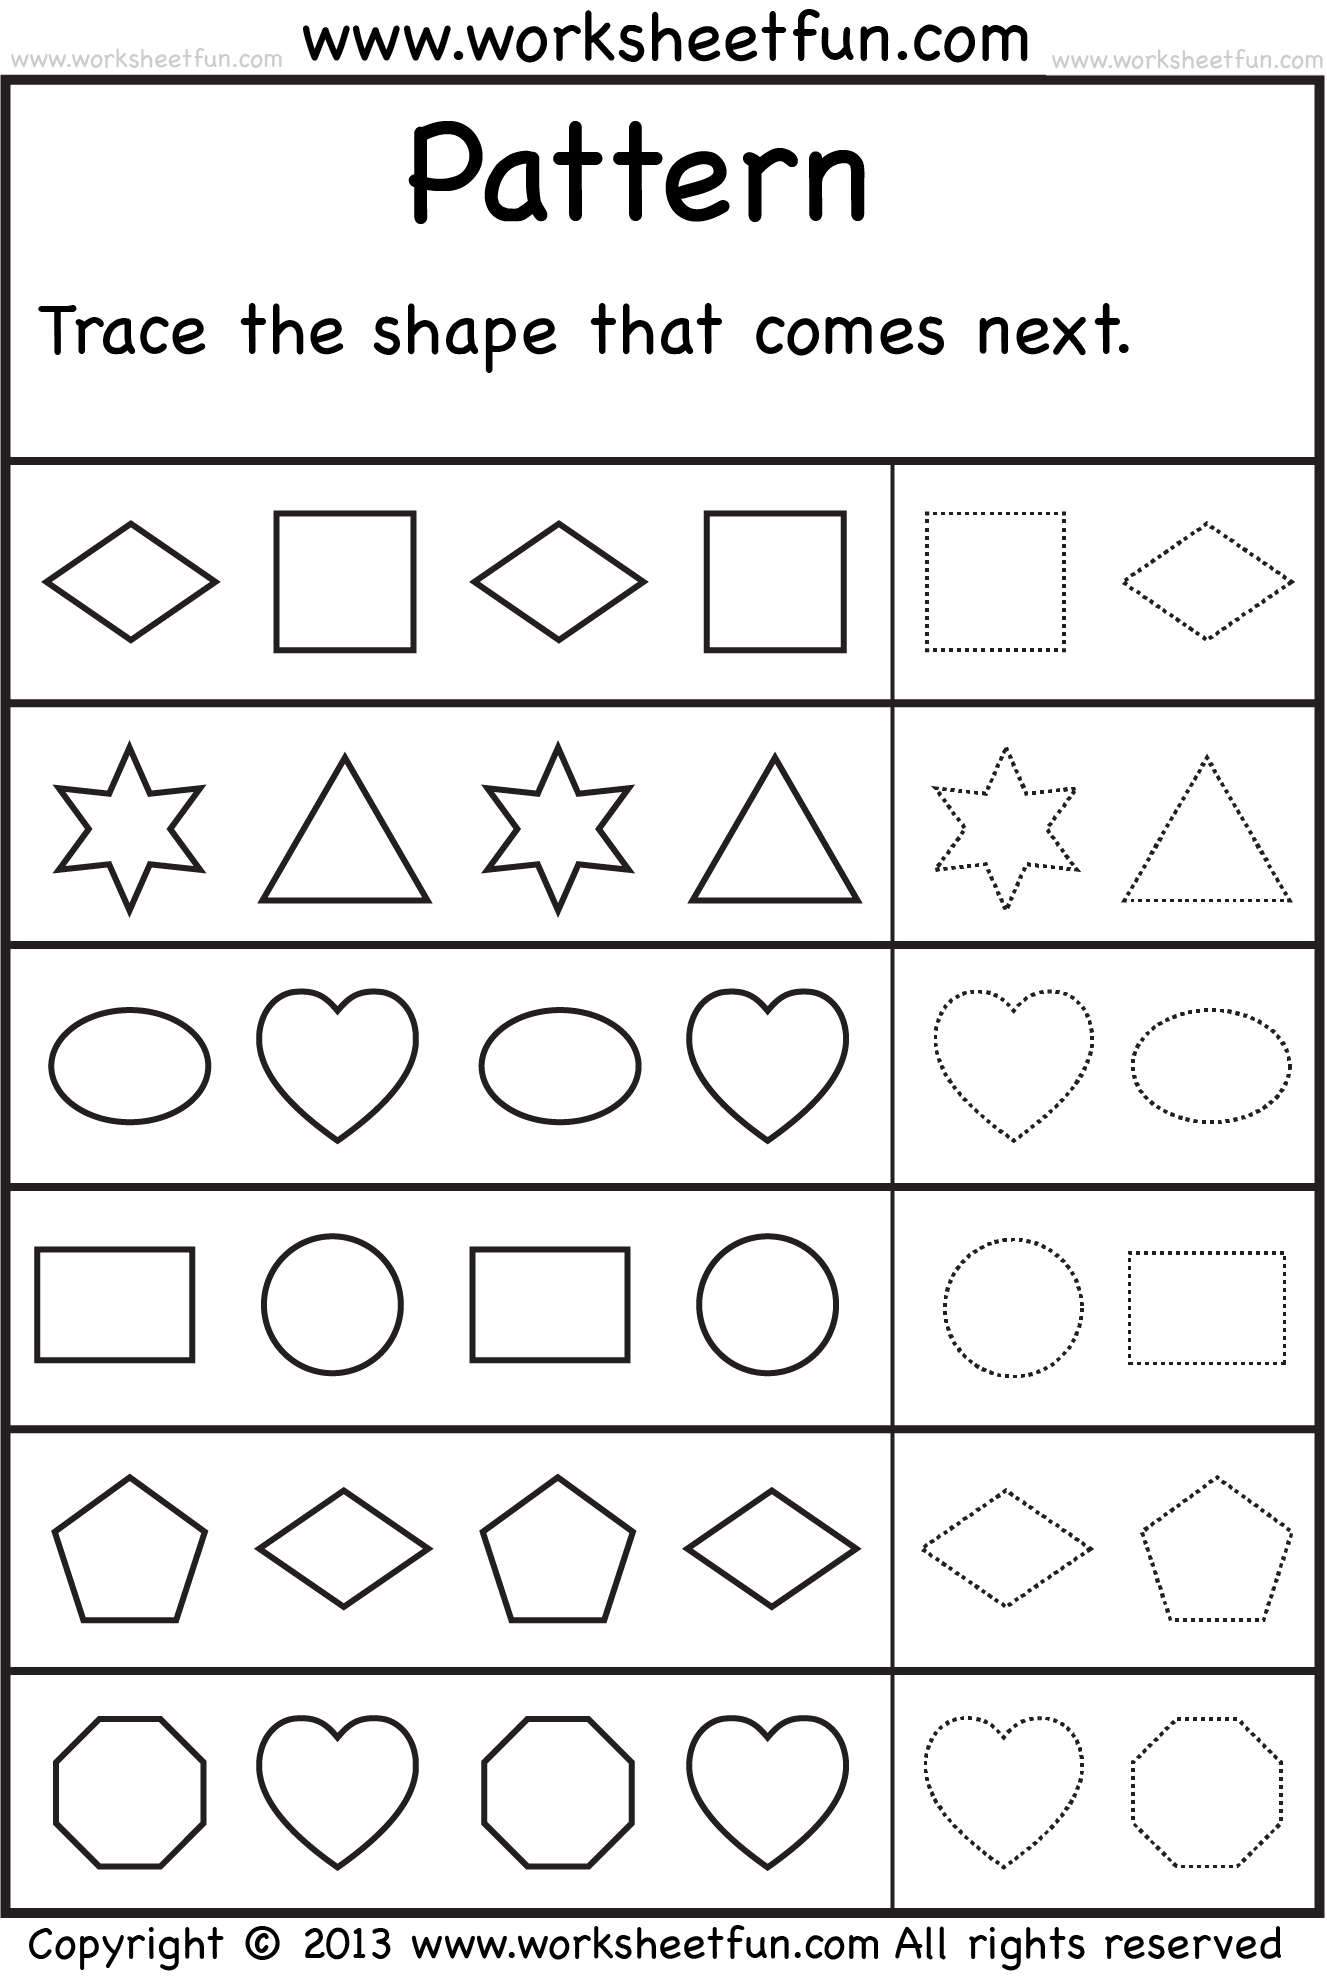 Pattern Printable Images Gallery Category Page 5